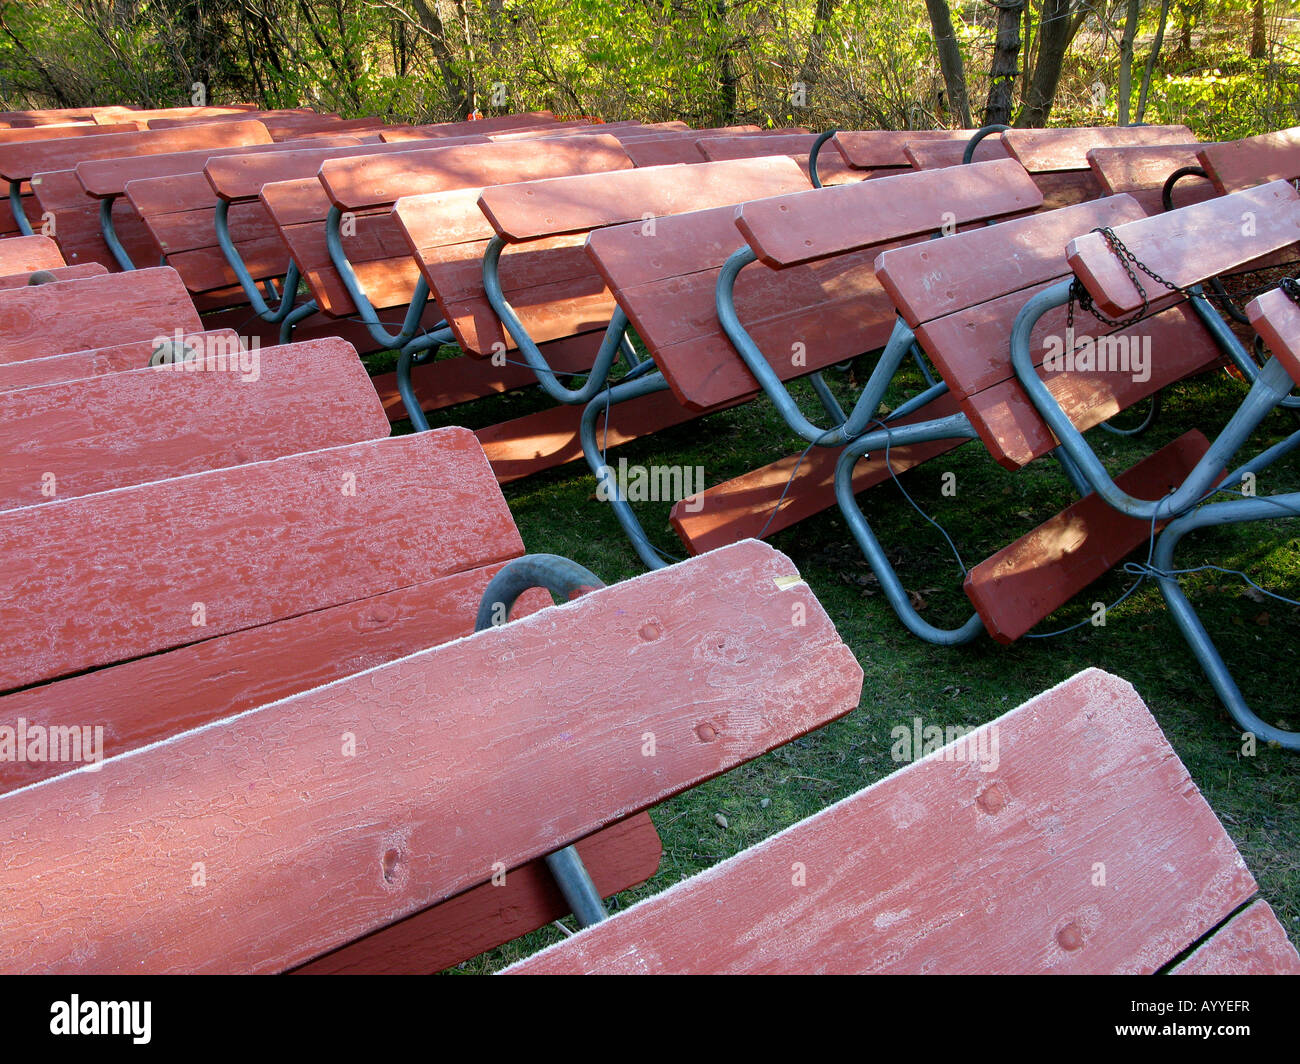 Picnic Tables Stacked And Stored For The Winter Stock Photo ...